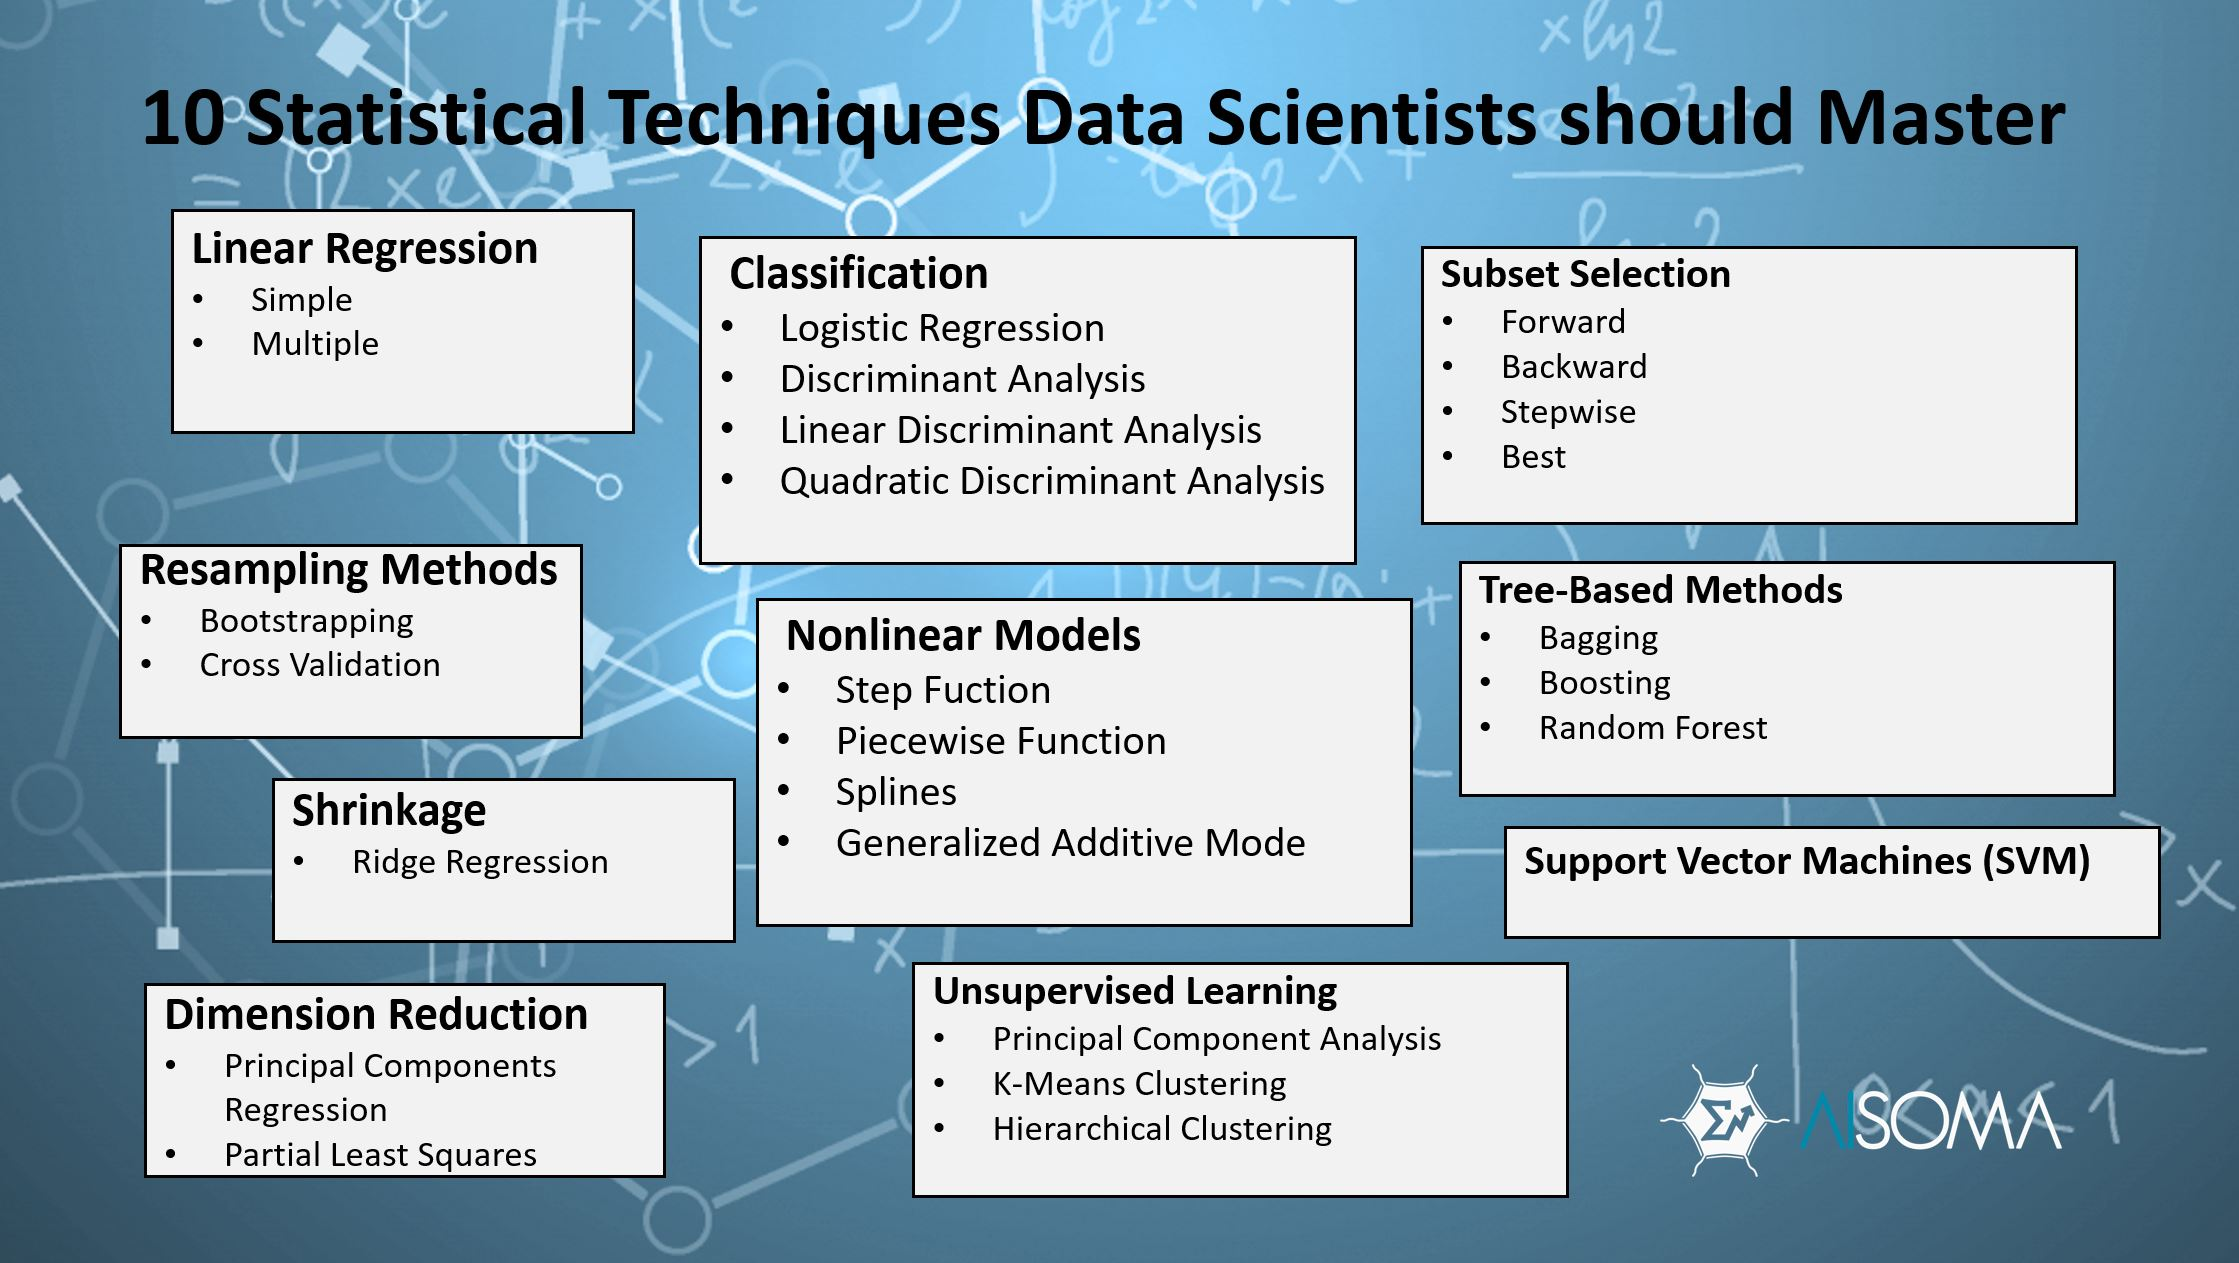 10 Statistical Techniques Data Scientists Should Master #AI #ML #KI #DataScience #statistics #machinelearning #analytics #BigDataAnalytics #BI #Algorithms